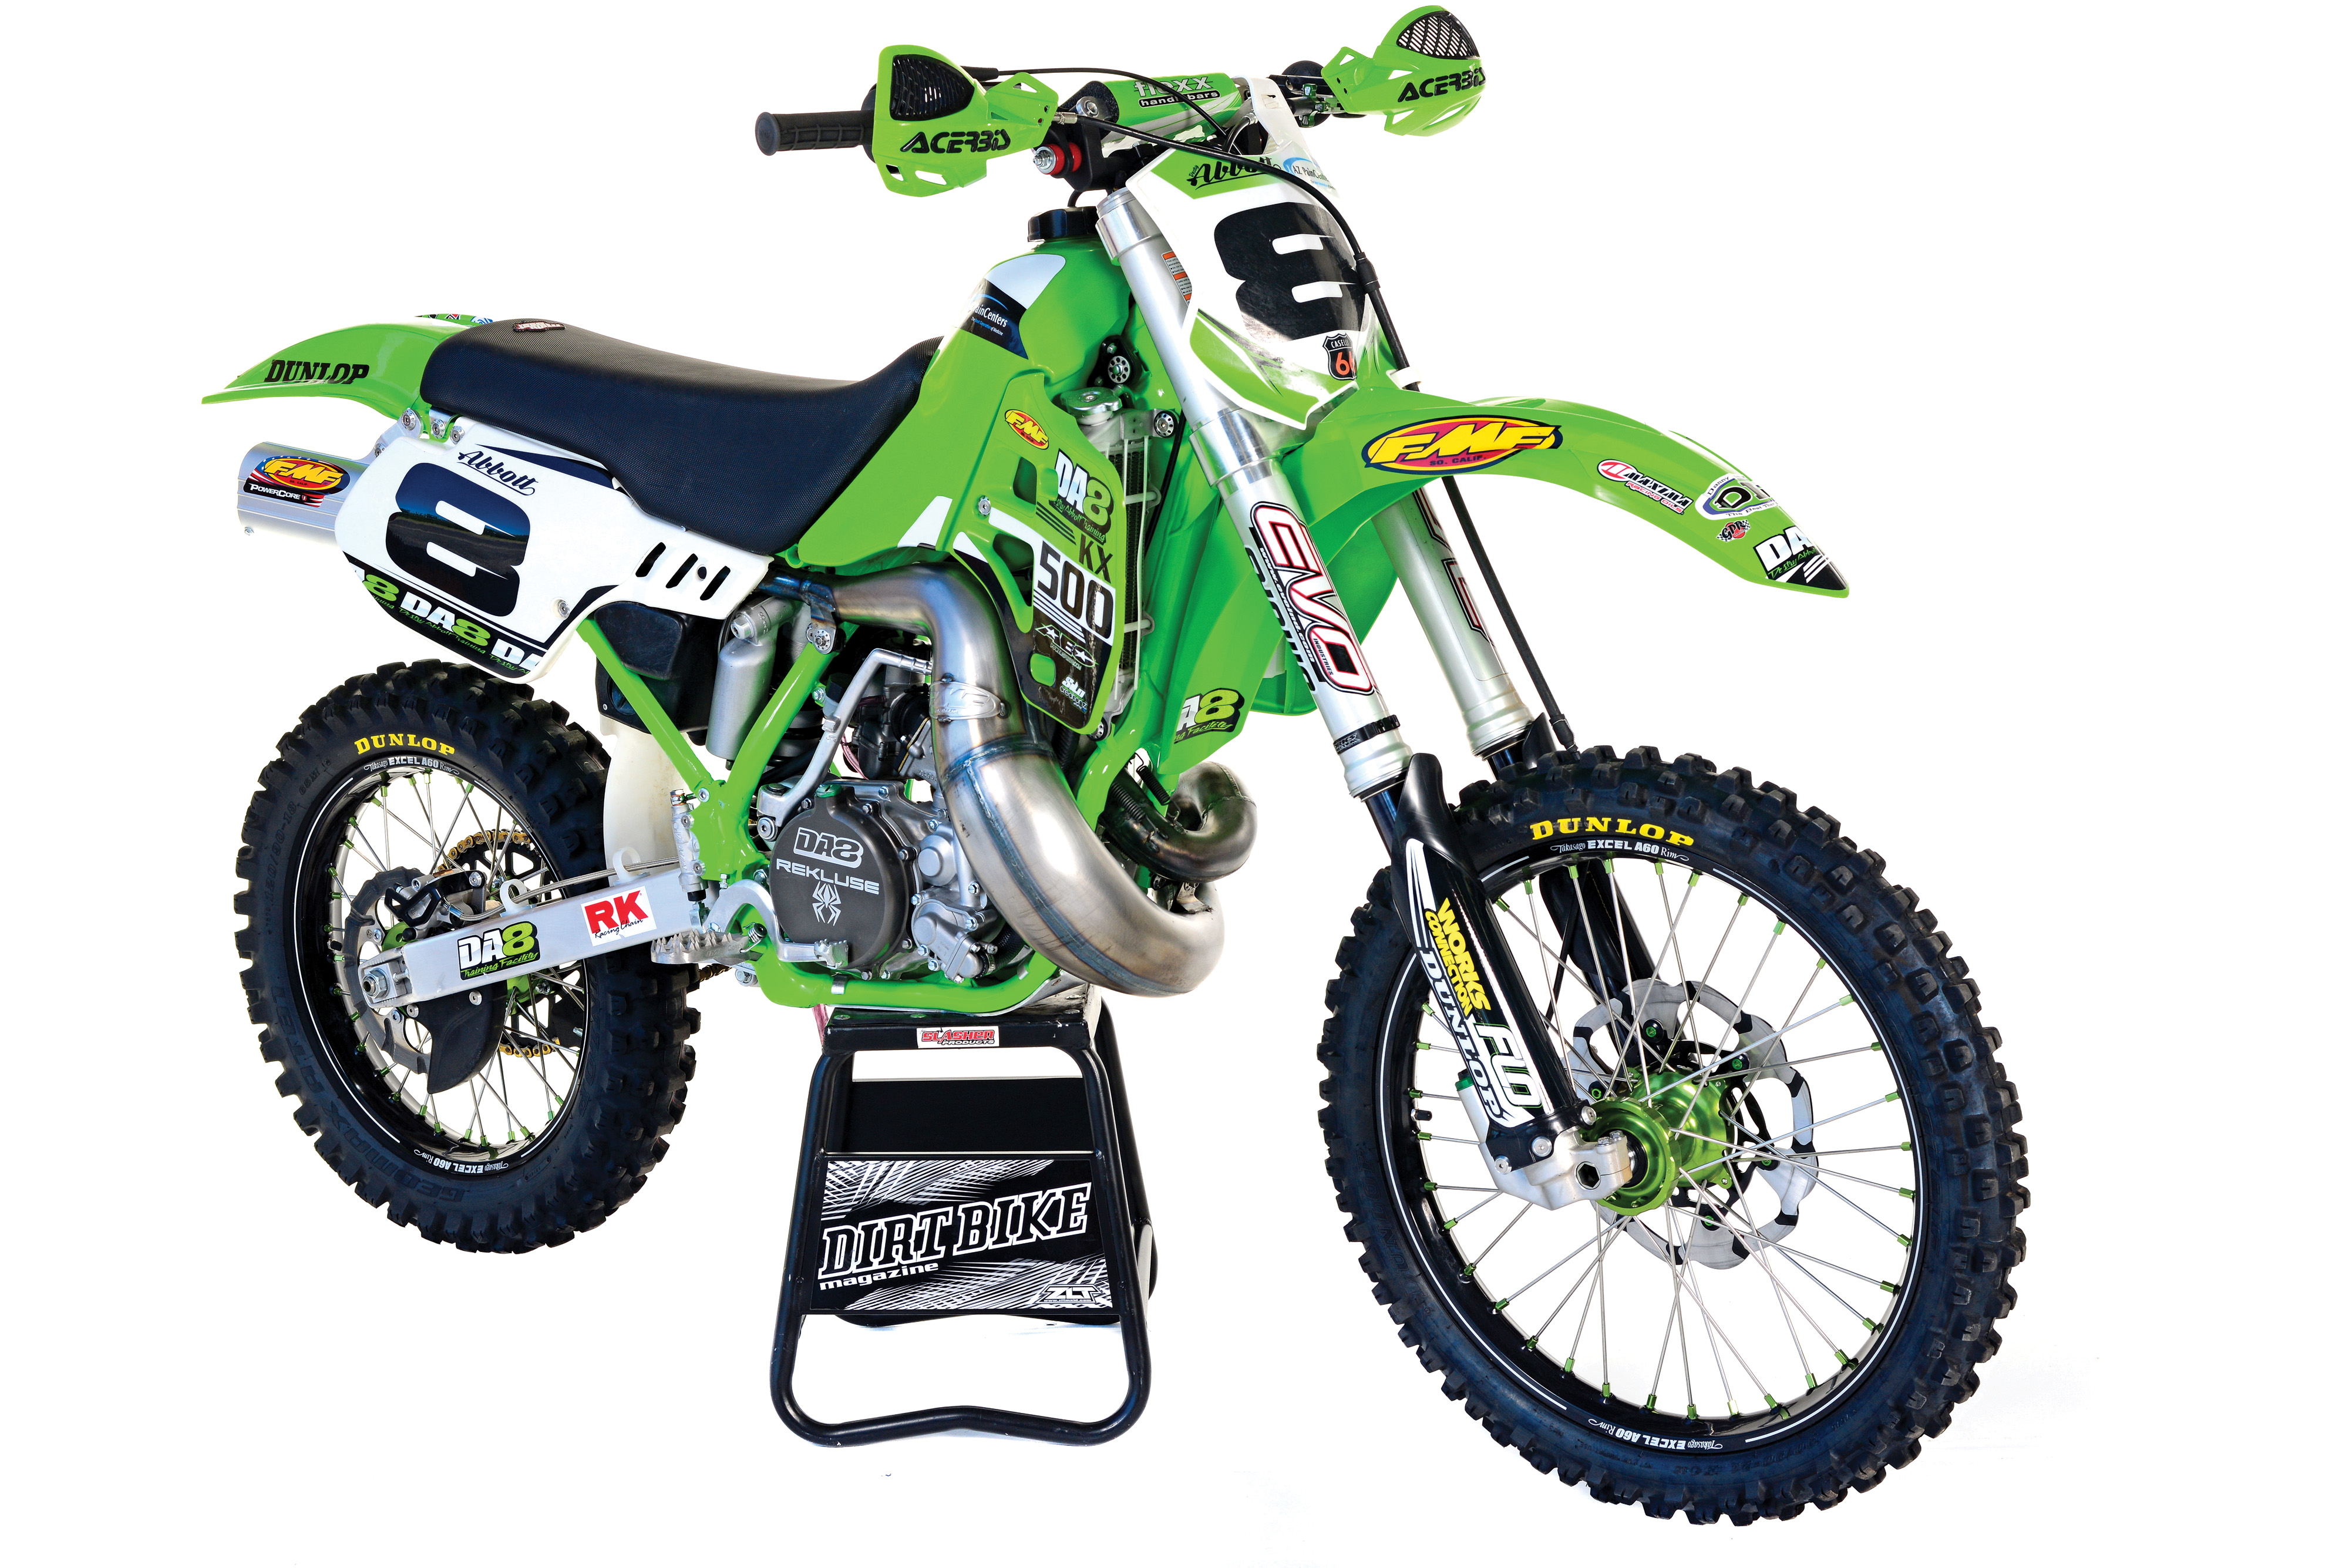 Kx250f Dirt Bike Diagram Auto Electrical Wiring Subaru Trailer Harness Fuse Box Kawasaki John Deere Diagrams Elsalvadorla Motorcycle Parts Pit